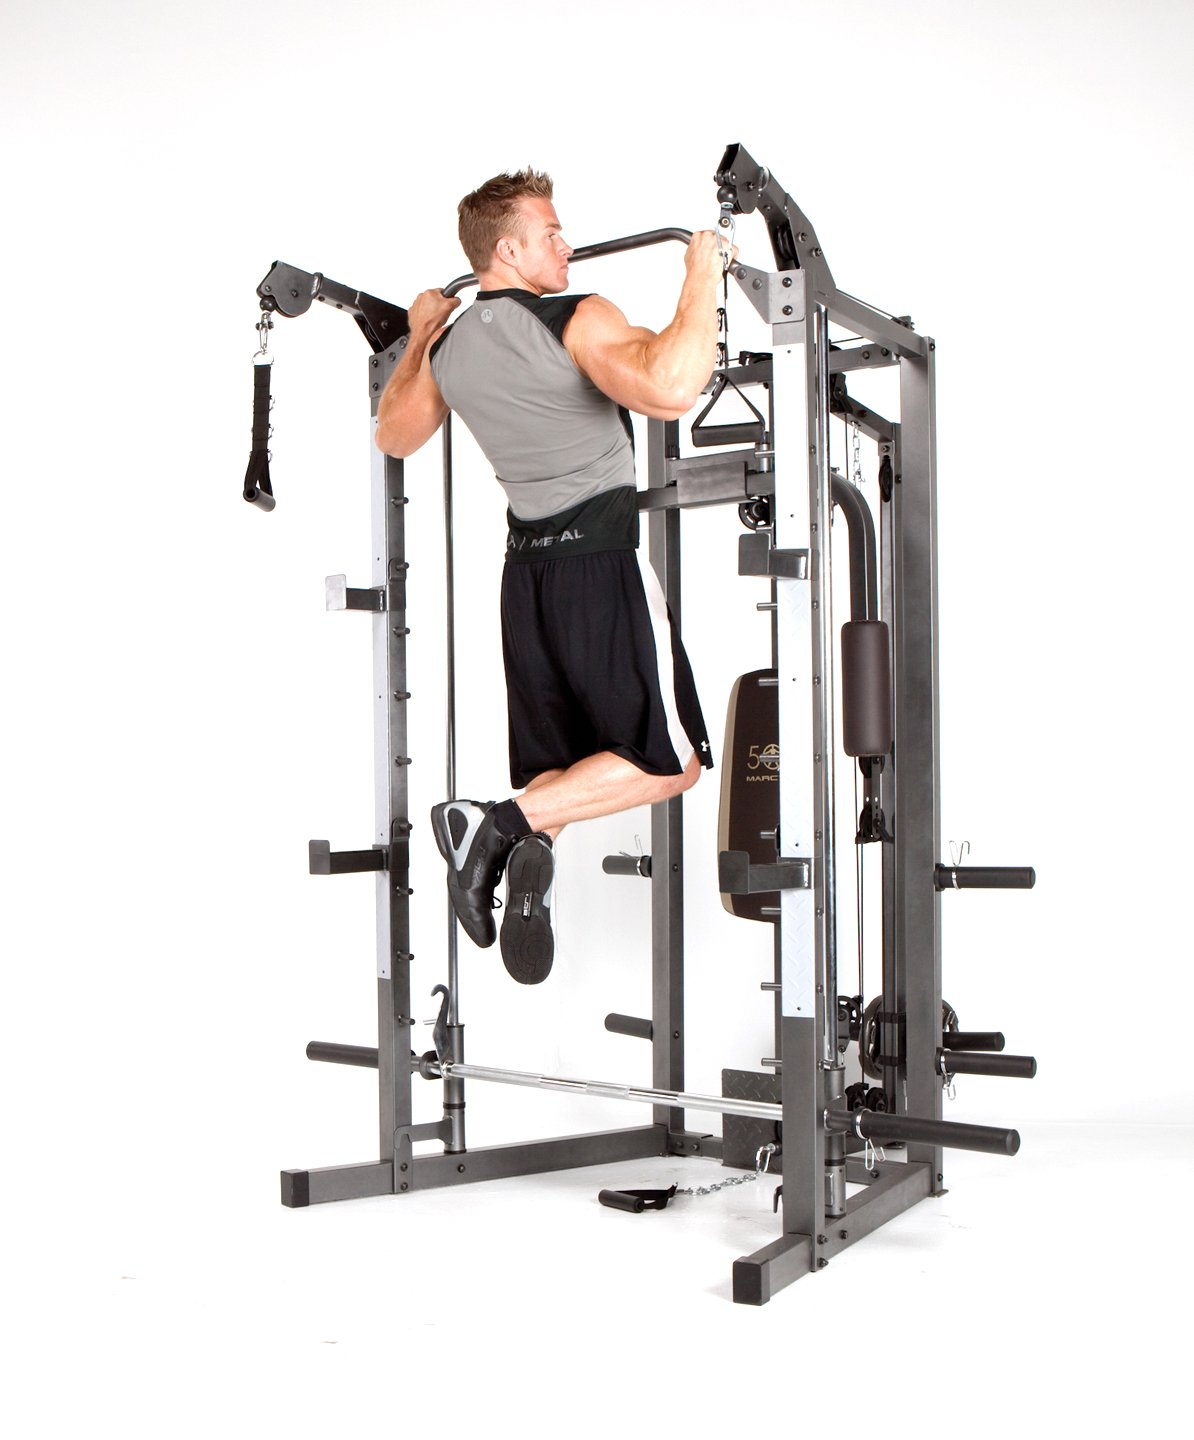 Marcy Smith Machine with Bench and Weight Bar – Home Gym Equipment SM-4008 by Marcy (Image #6)